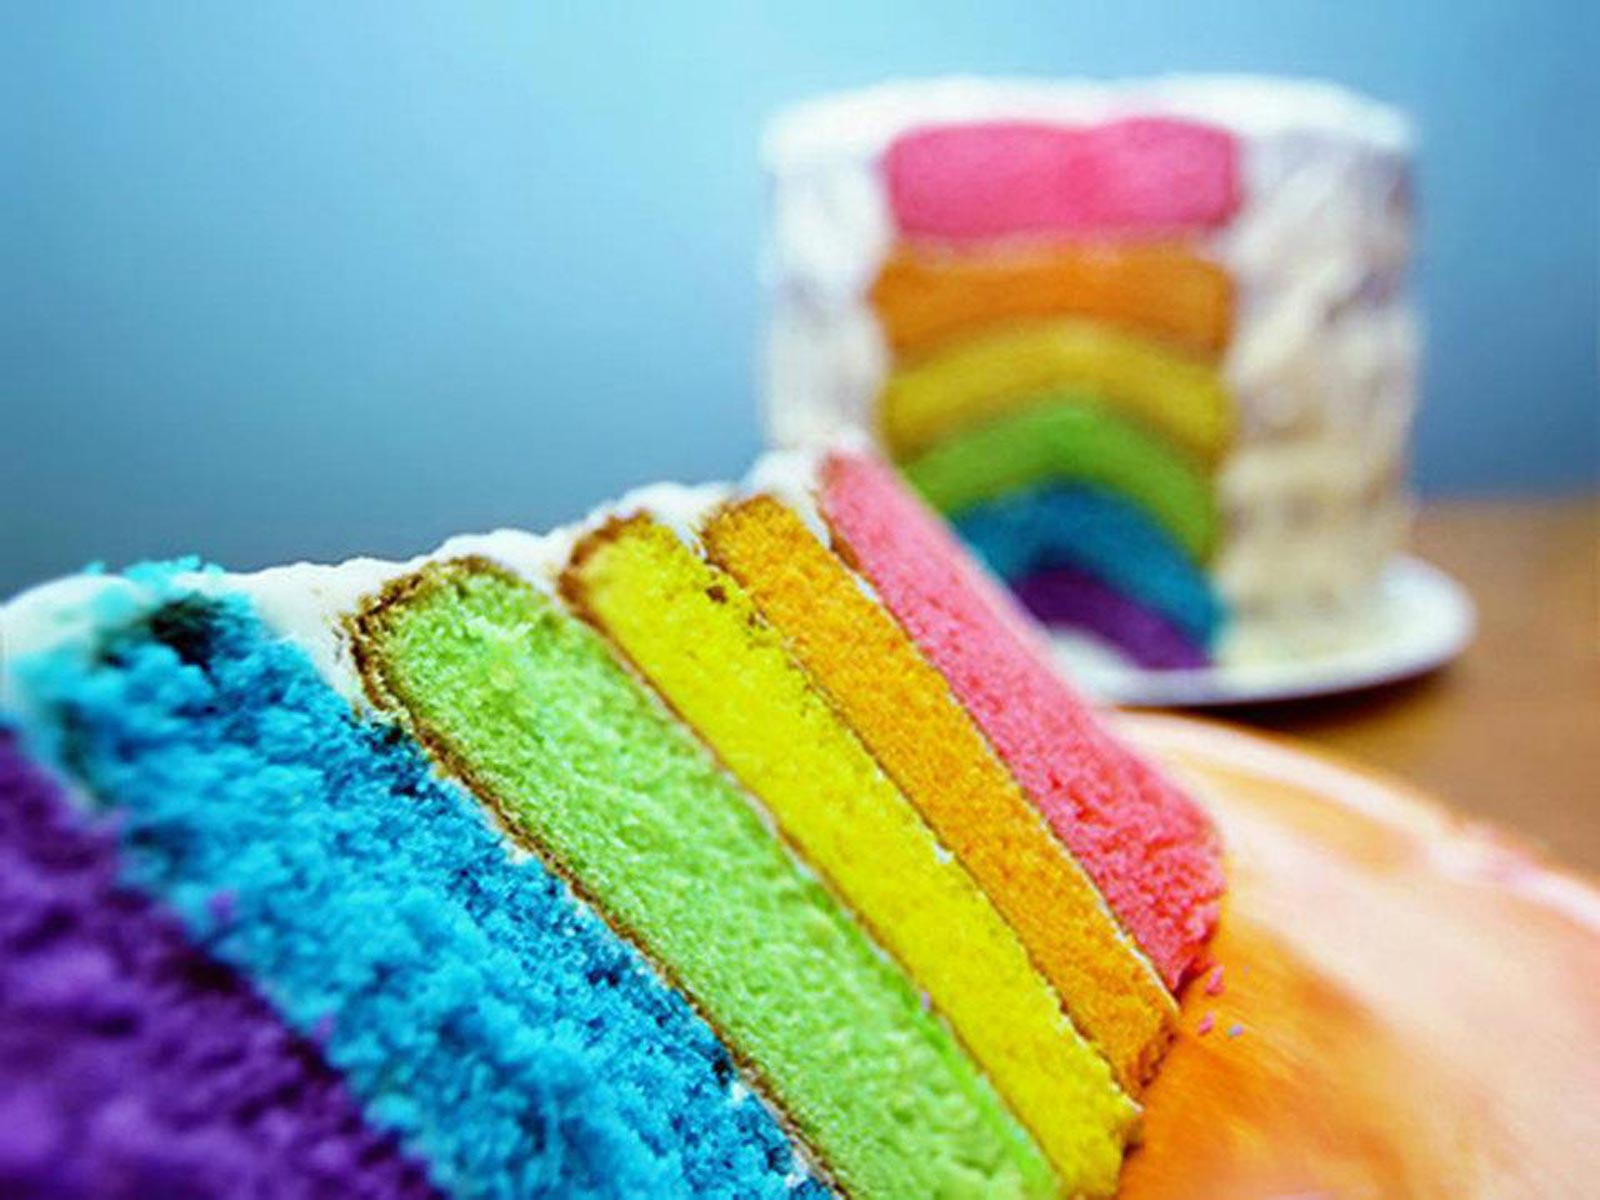 Sweet-and-Delish-Rainbow-Cake-colors-34691726-1600-1200